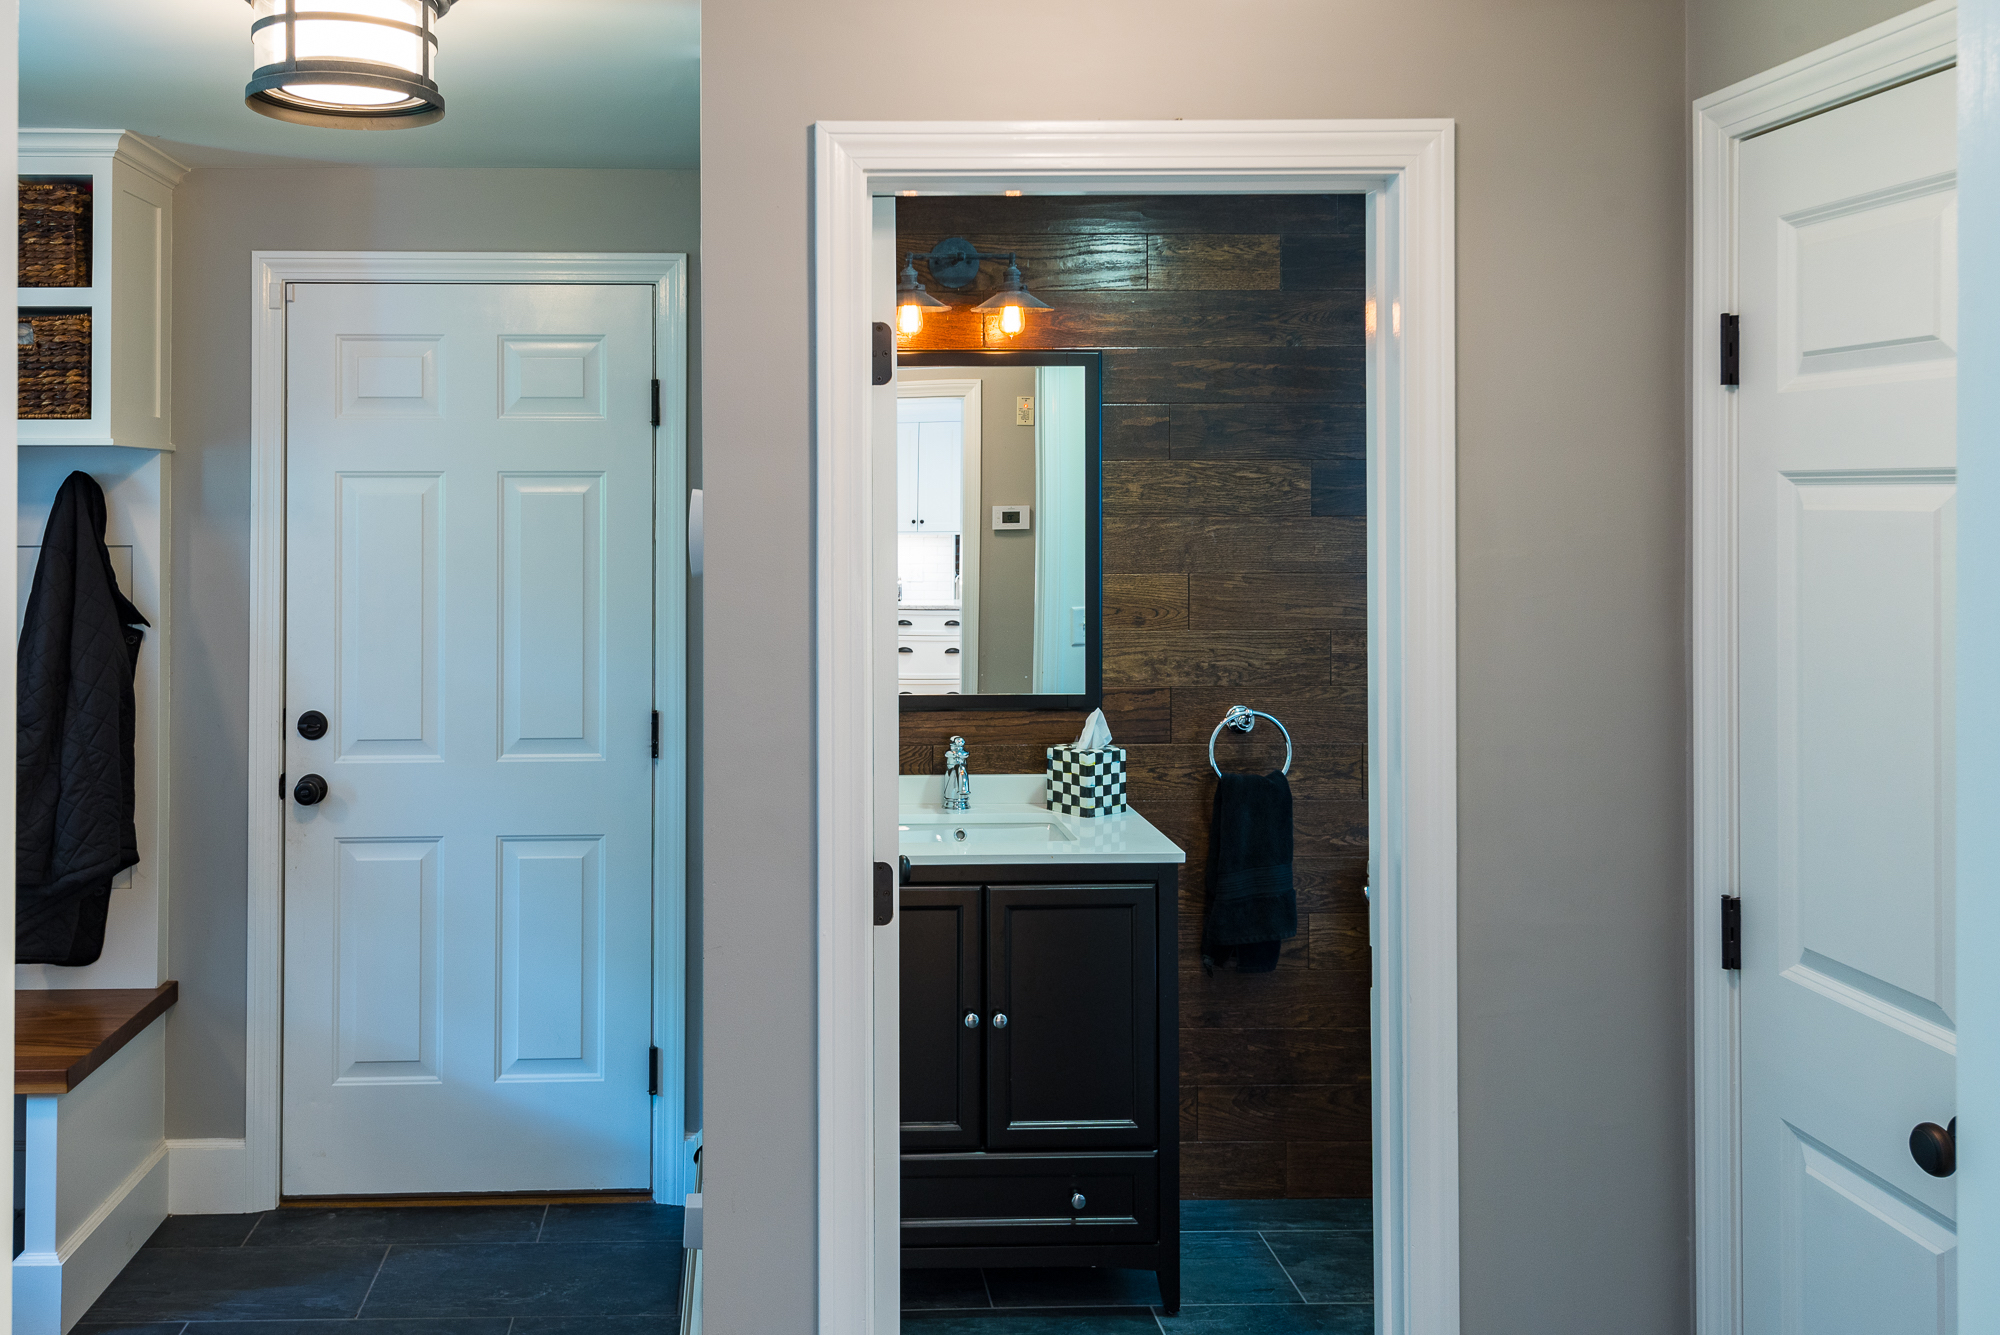 14-KitchenVisions-PowderRoom-Bath-Mudroom-Wood-Walls-Wayland.jpg